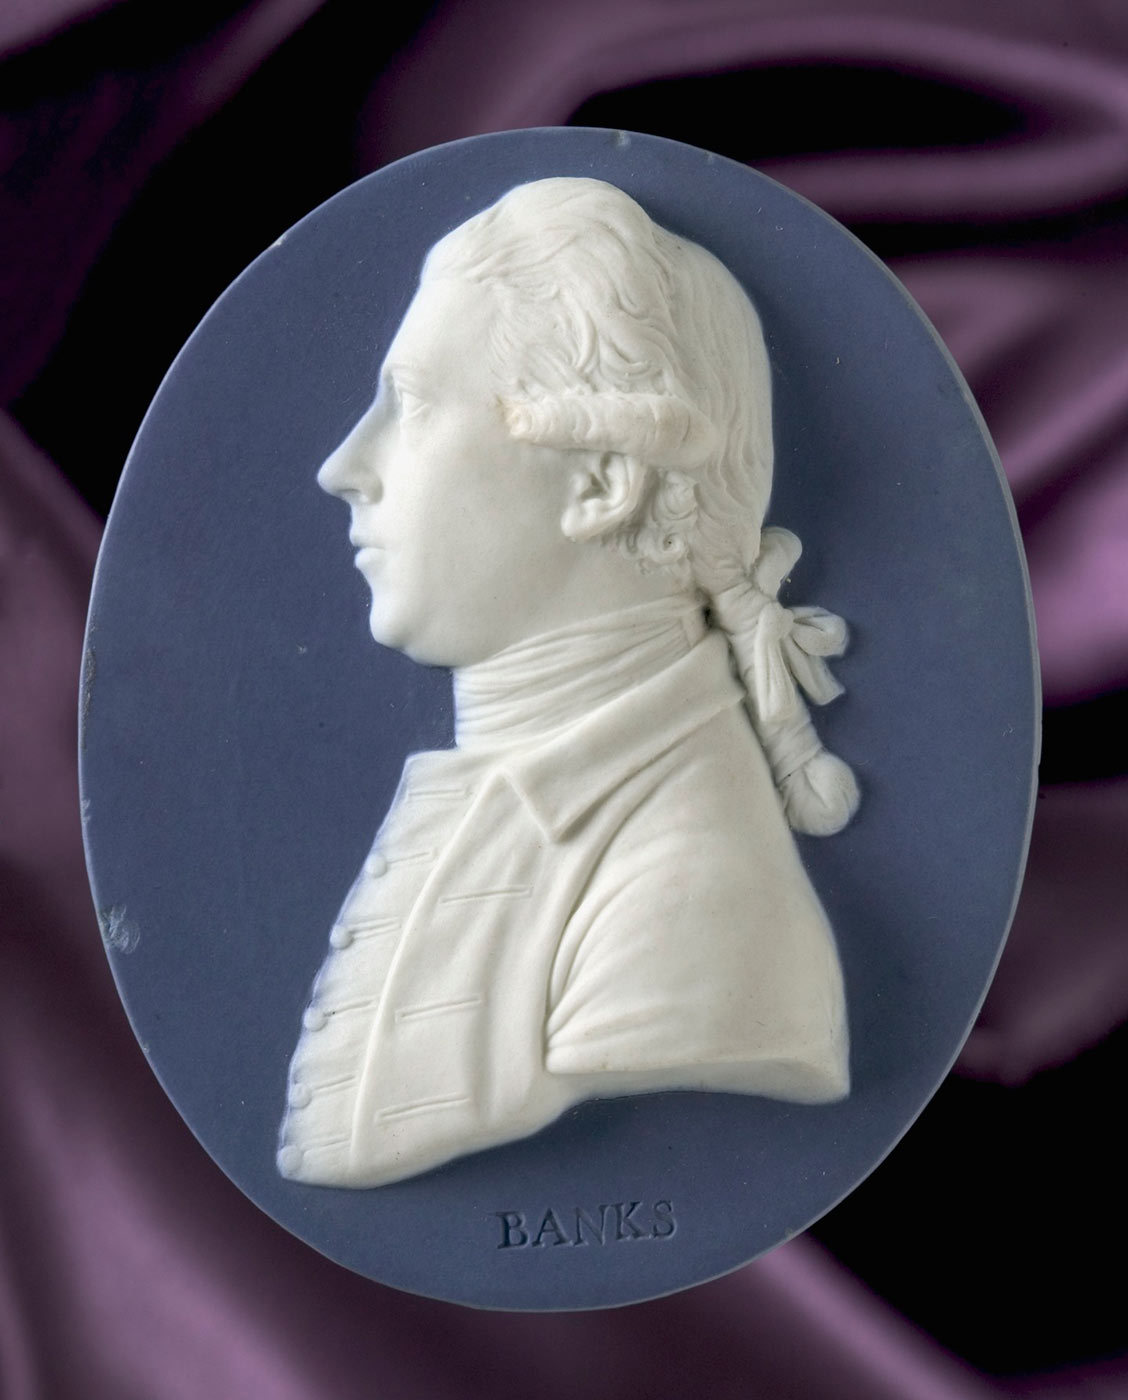 Oval blue jasper portrait medallion of Sir Joseph Banks, featuring a white profile bust in relief on a blue background. Below the bust imprinted into the ceramic is the text 'BANKS'. - click to view larger image